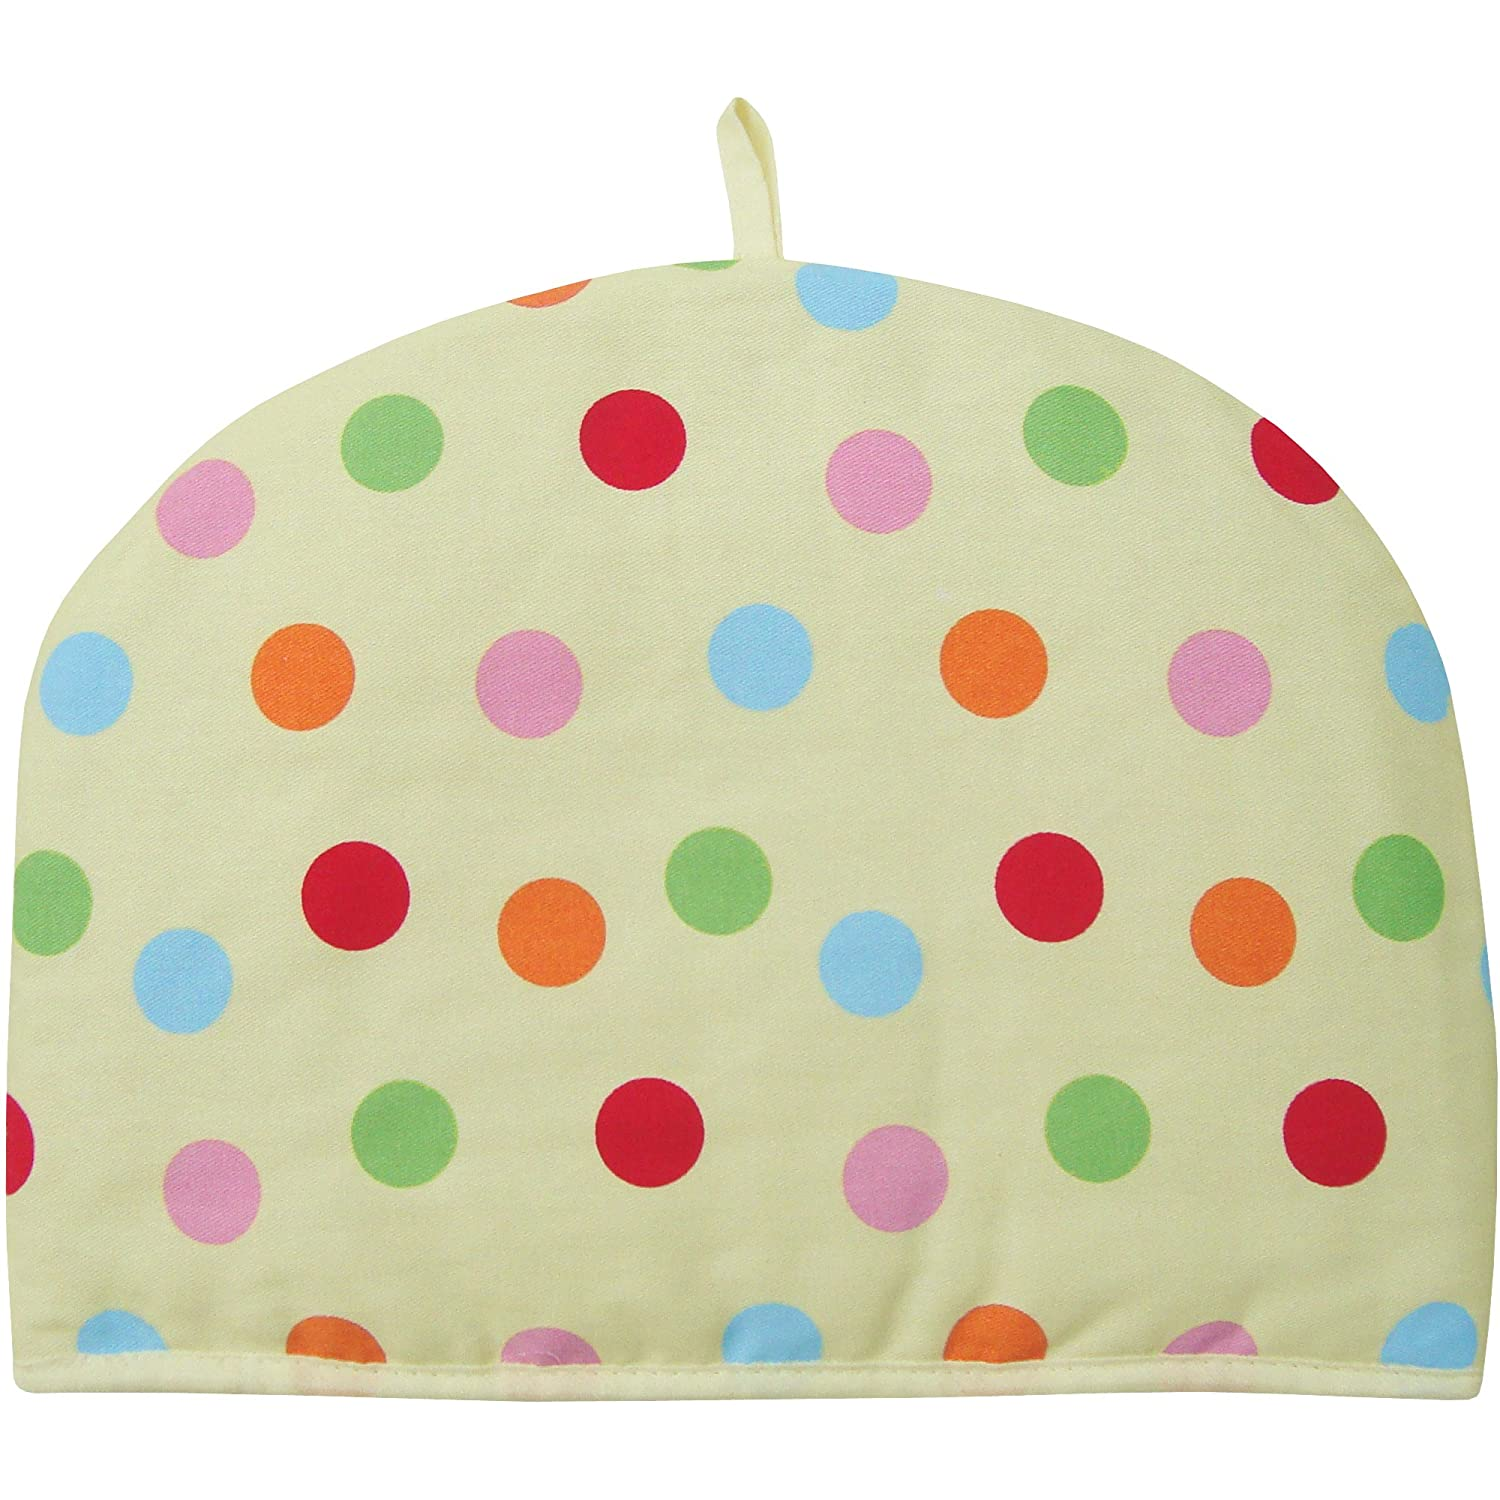 Cream Rainbow Polka Dot Large Insulated Dome Tea Cosy Teapot Warmer TeddyT's